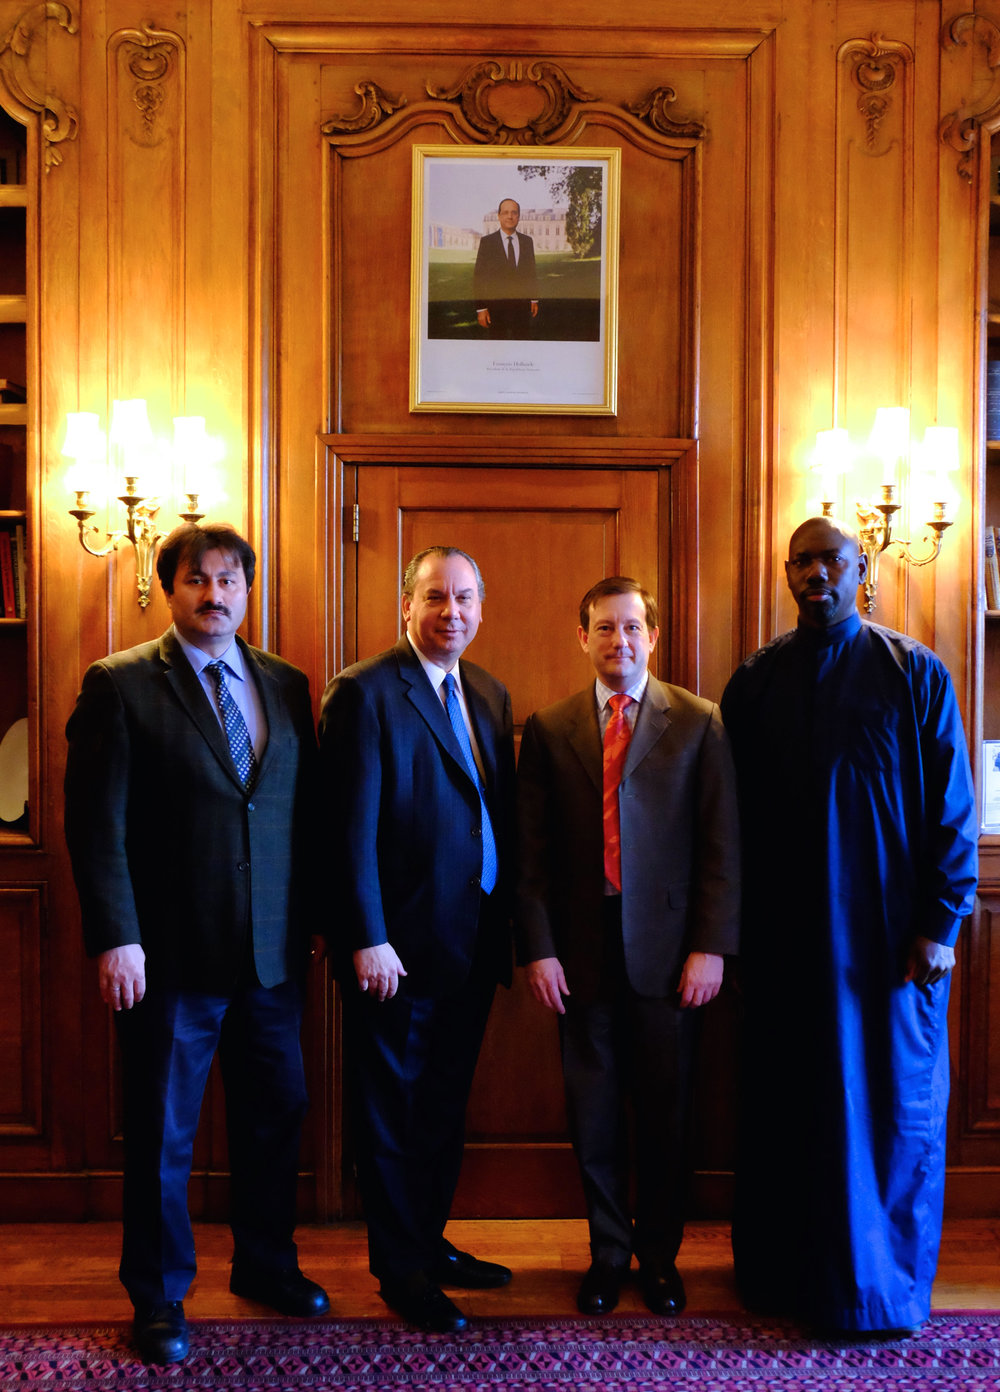 L-R: Imam Ibrahim Sayar, FFEU President Rabbi Marc Schneier, French Consul-General to New York Bertrand Lortholary and Imam Moussa Drammeh. 2015